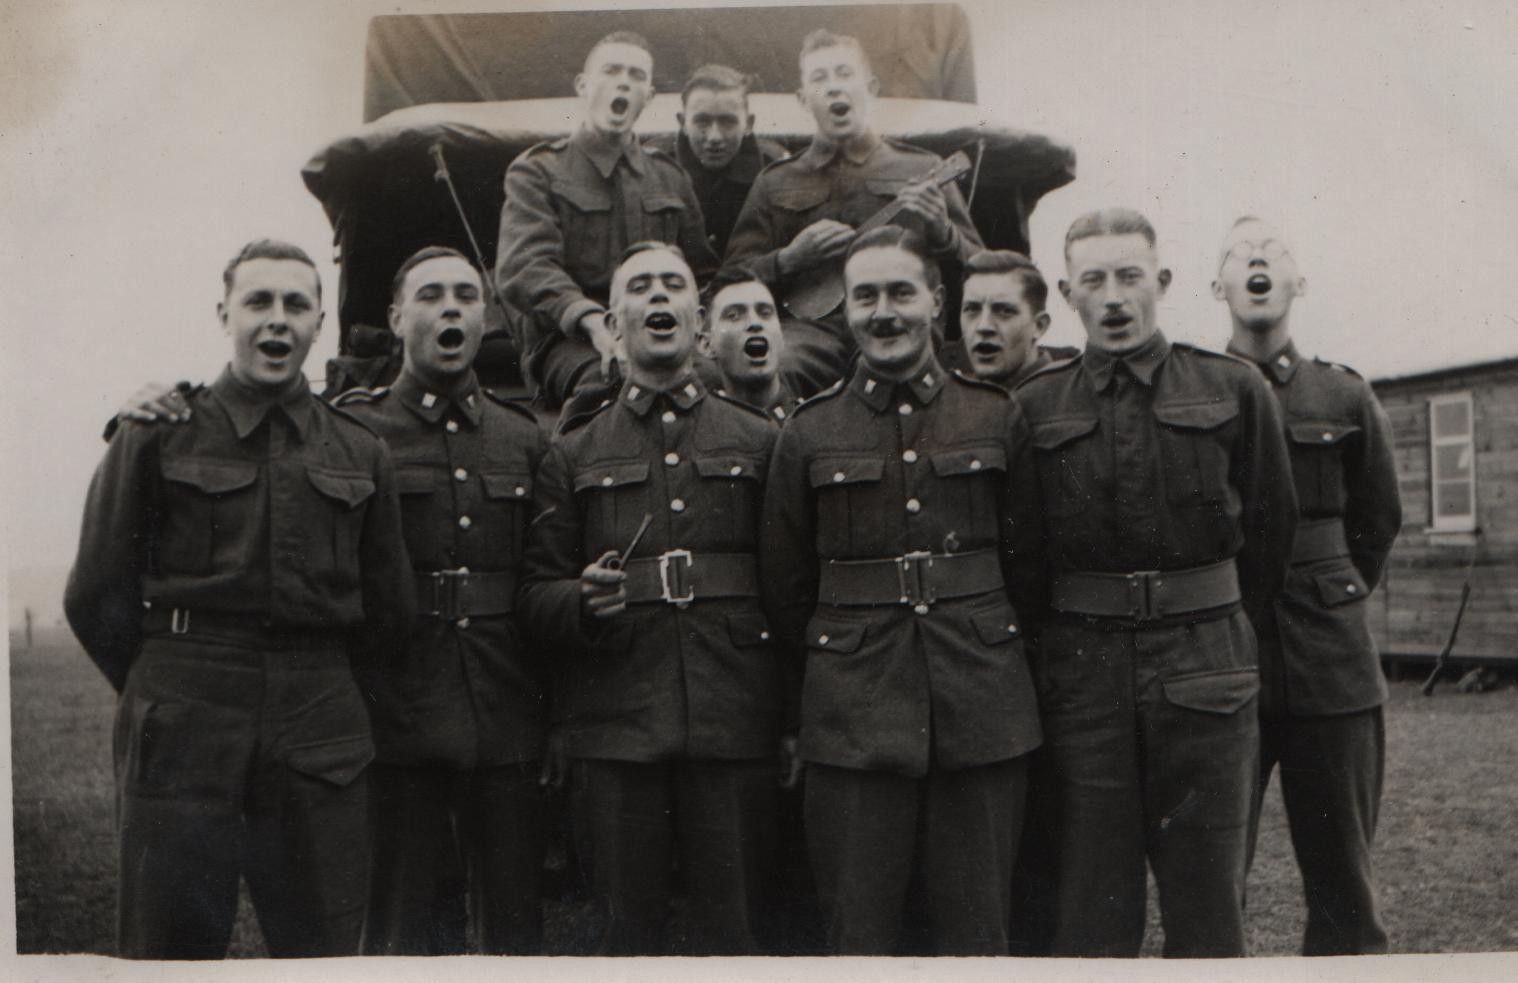 1939 Burnham Market 2nd/6th Bttn Essex Regiment Territorials Top far left Ernie Pickstay; front third from left Charlie Smith, DL far right